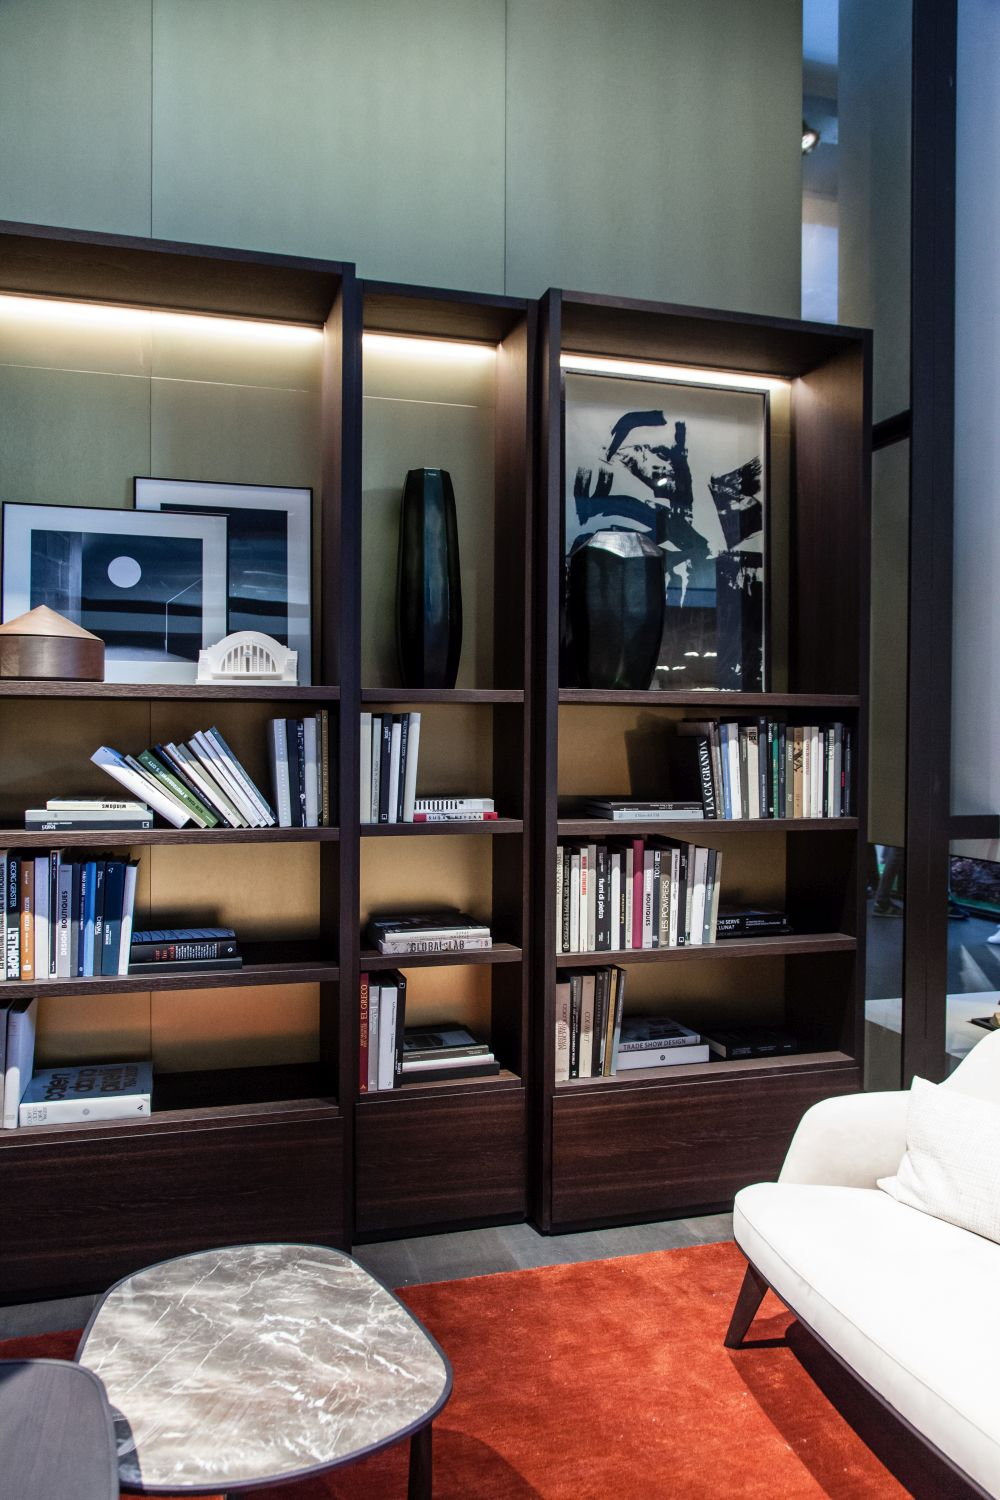 It's possible to combine several individual modules to put together a large bookcase